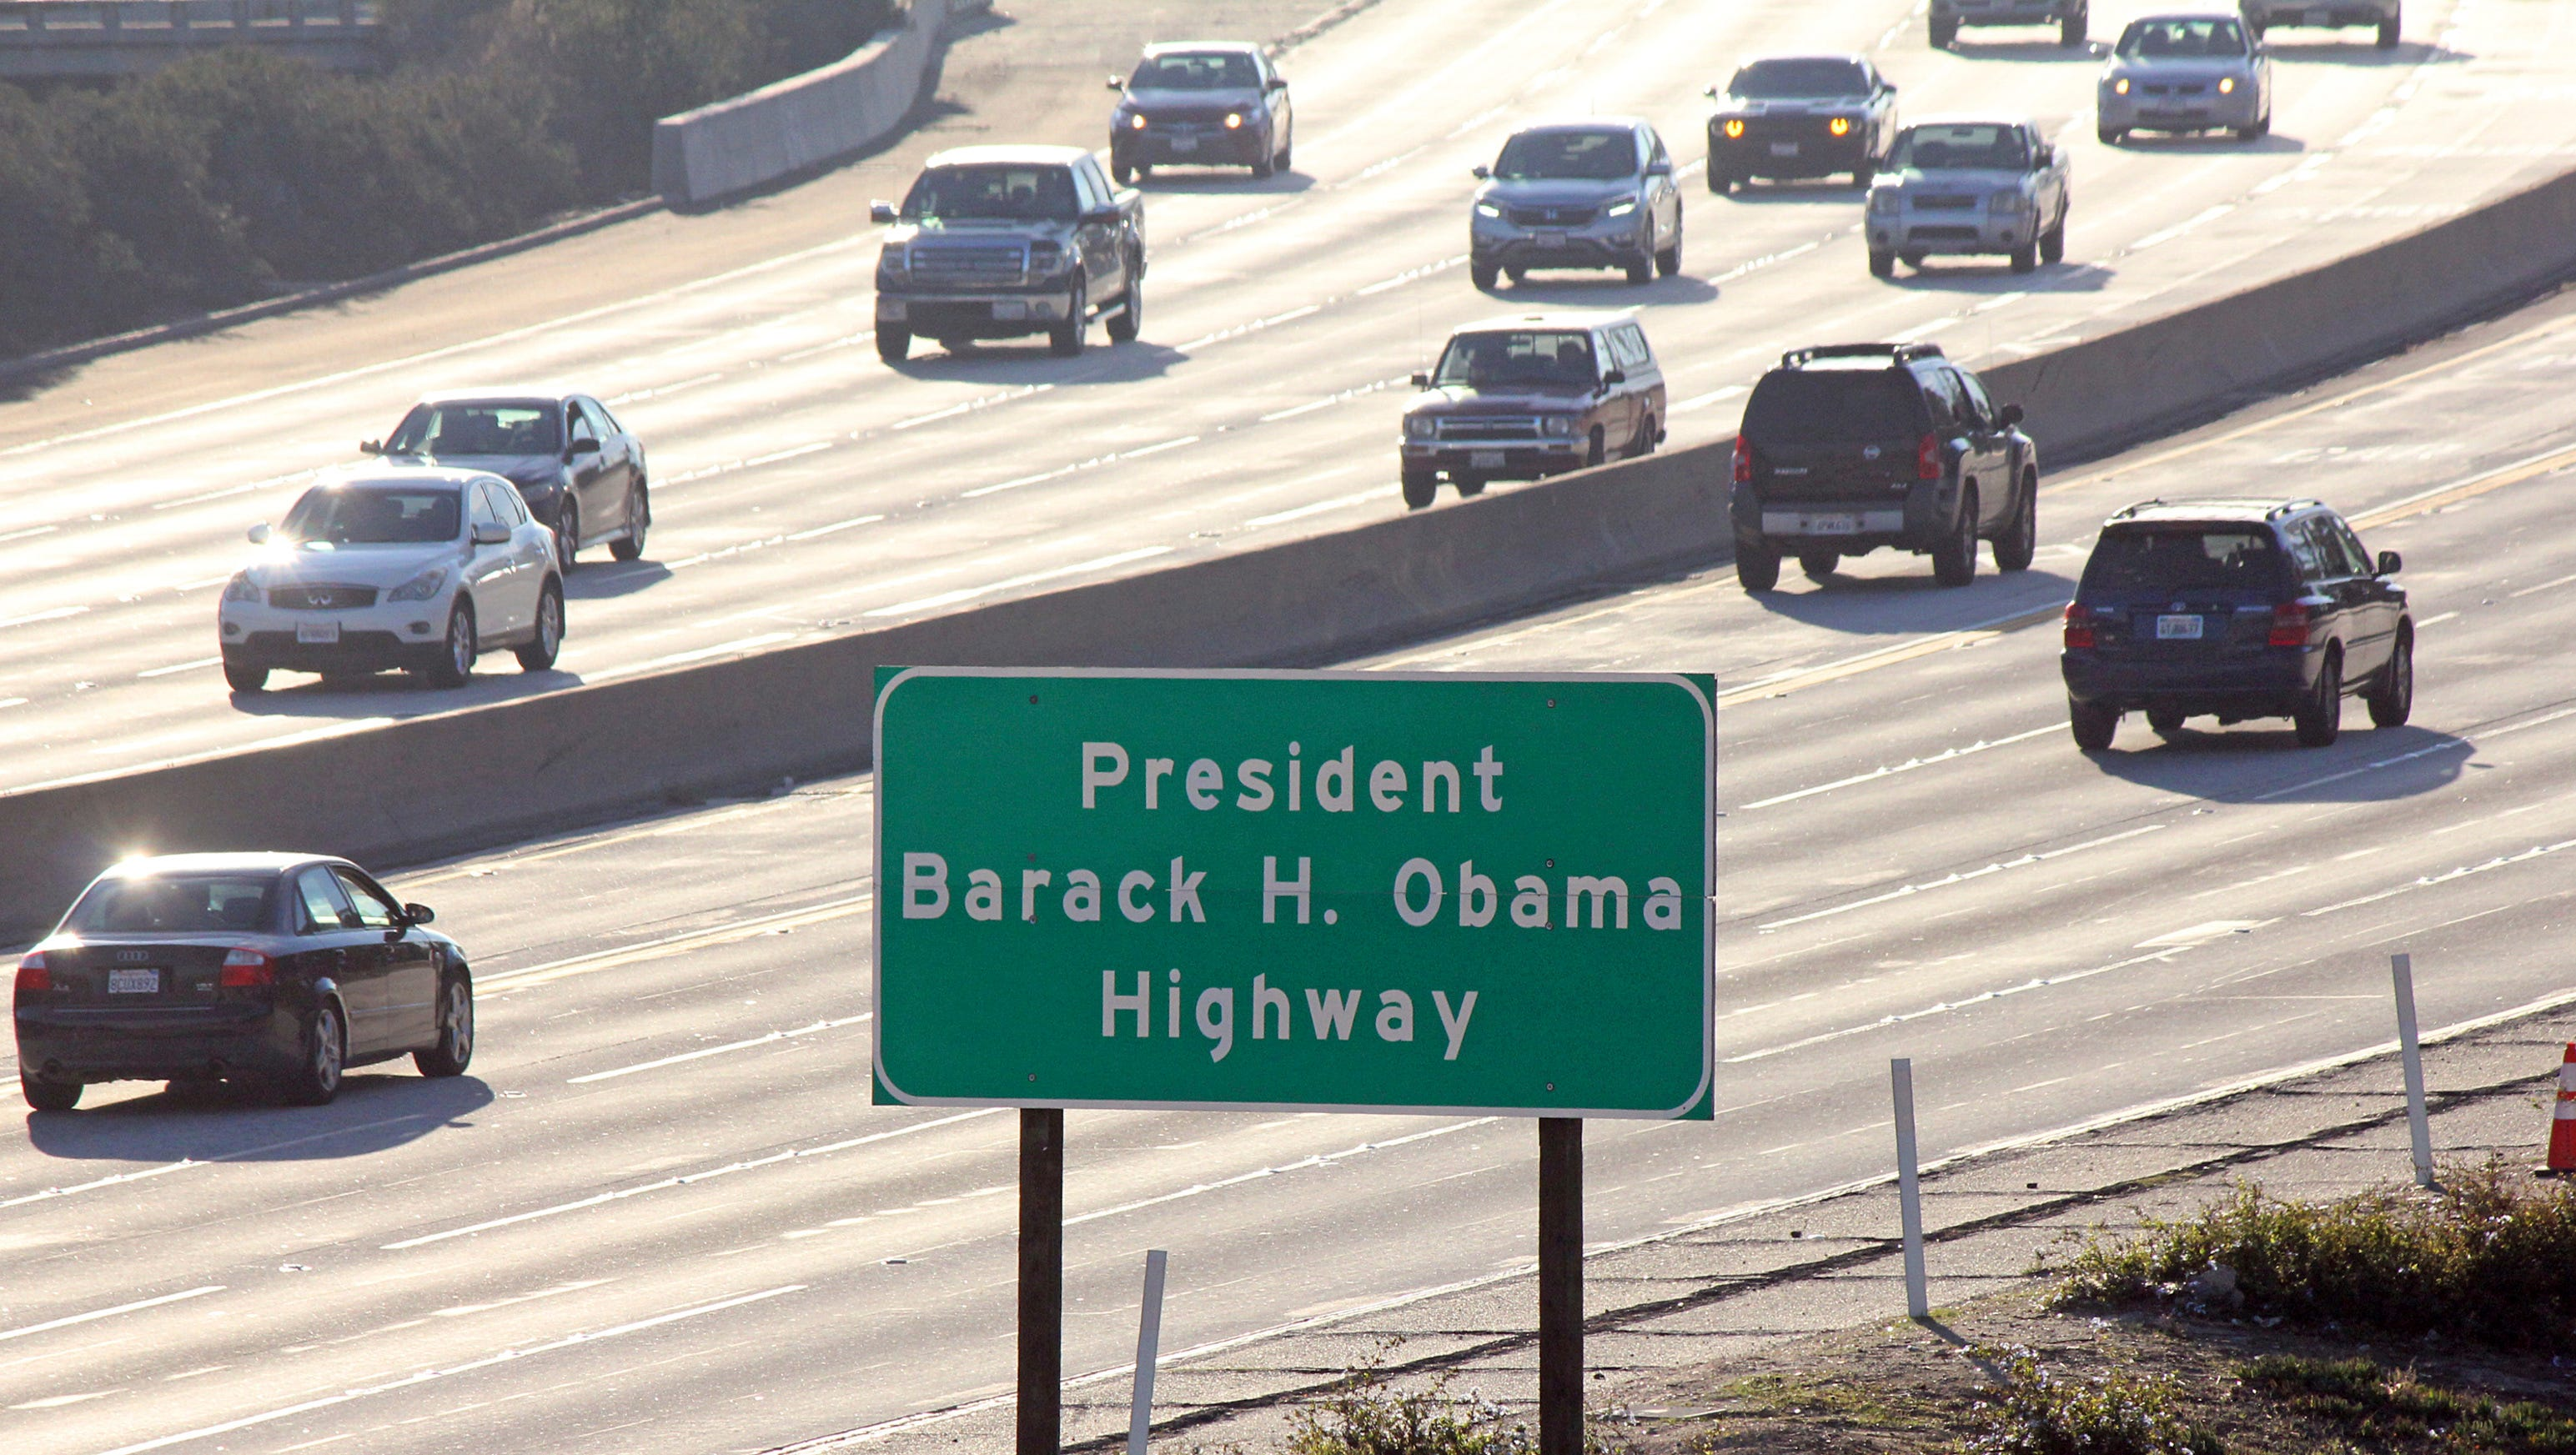 Signs have gone up naming a section of State Route 134 near Los Angeles as the President Barack H. Obama Highway.